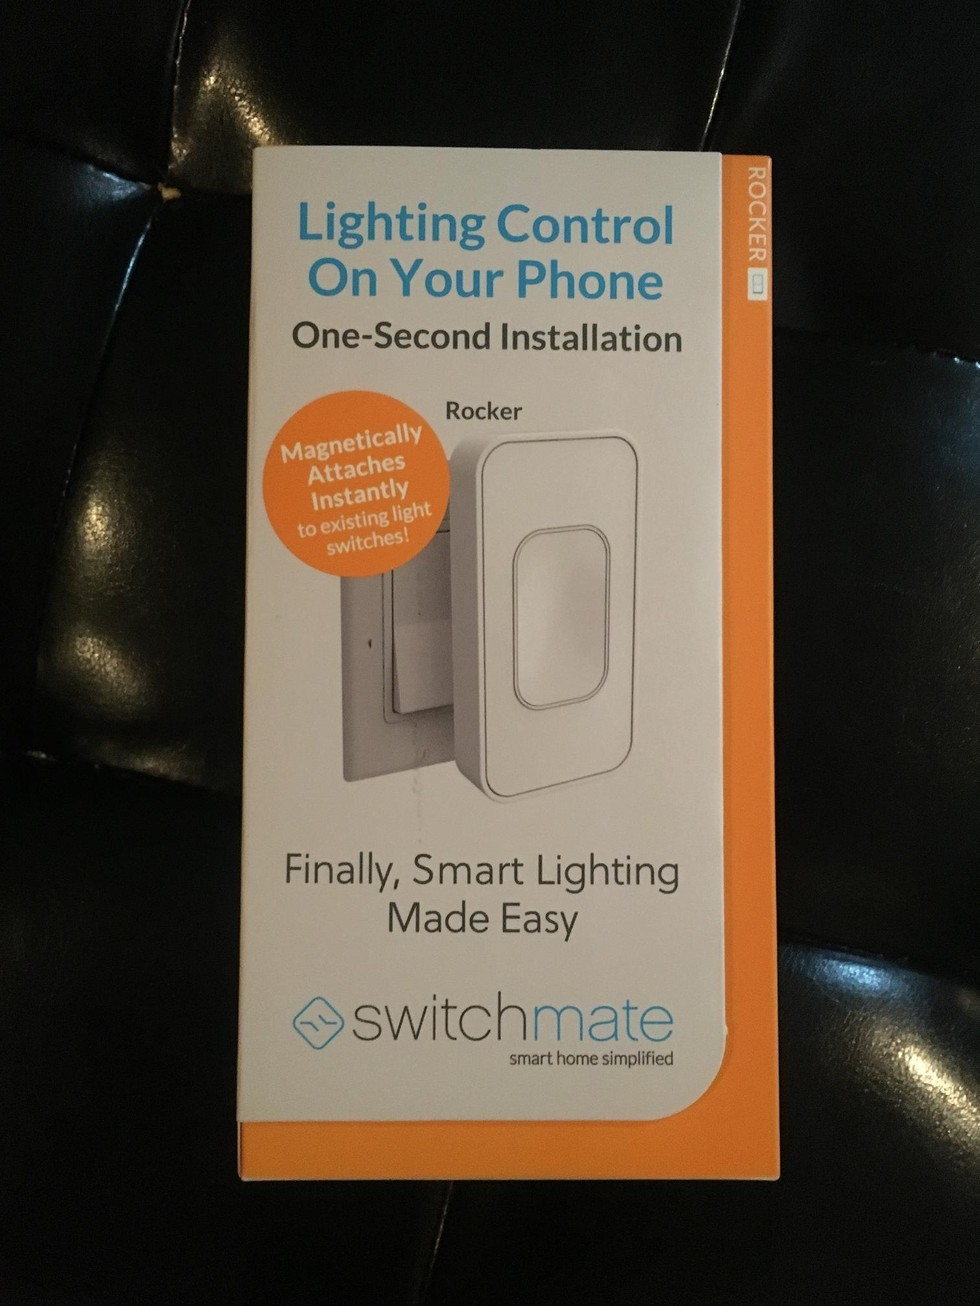 Gearbrain Switchmate39 Lets You Run Light Switch From Your Phone Without Rewiring Used 3365 In Stock